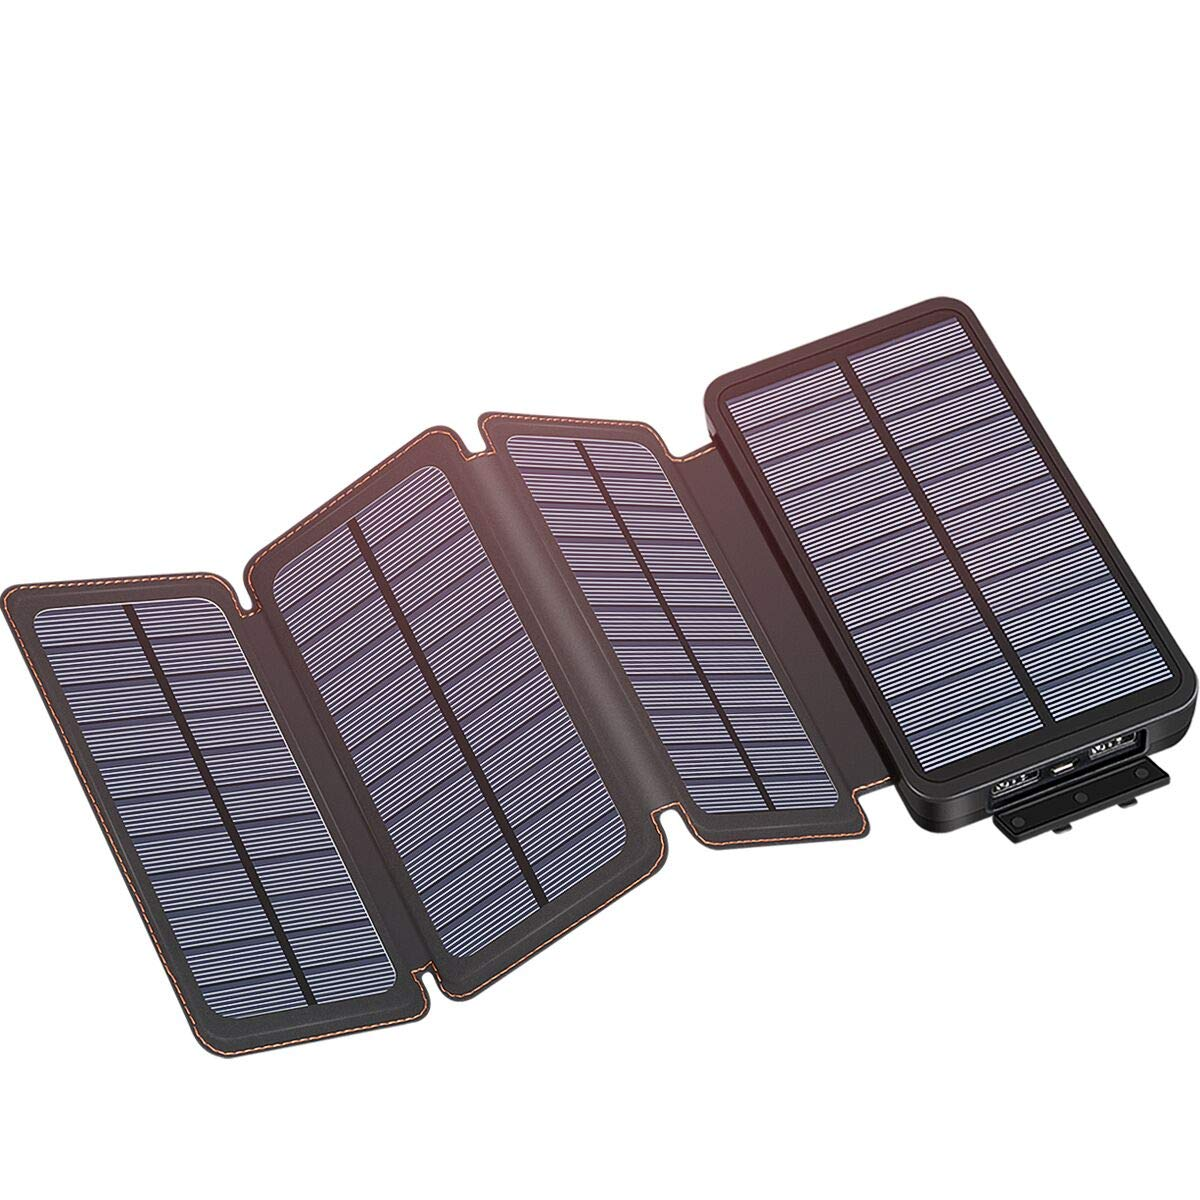 Solar Charger 25000mAh, IXNINE Solar Power Bank with 4 Solar Panels for Smartphones, Tablet, and Outdoor Camping by IXNINE